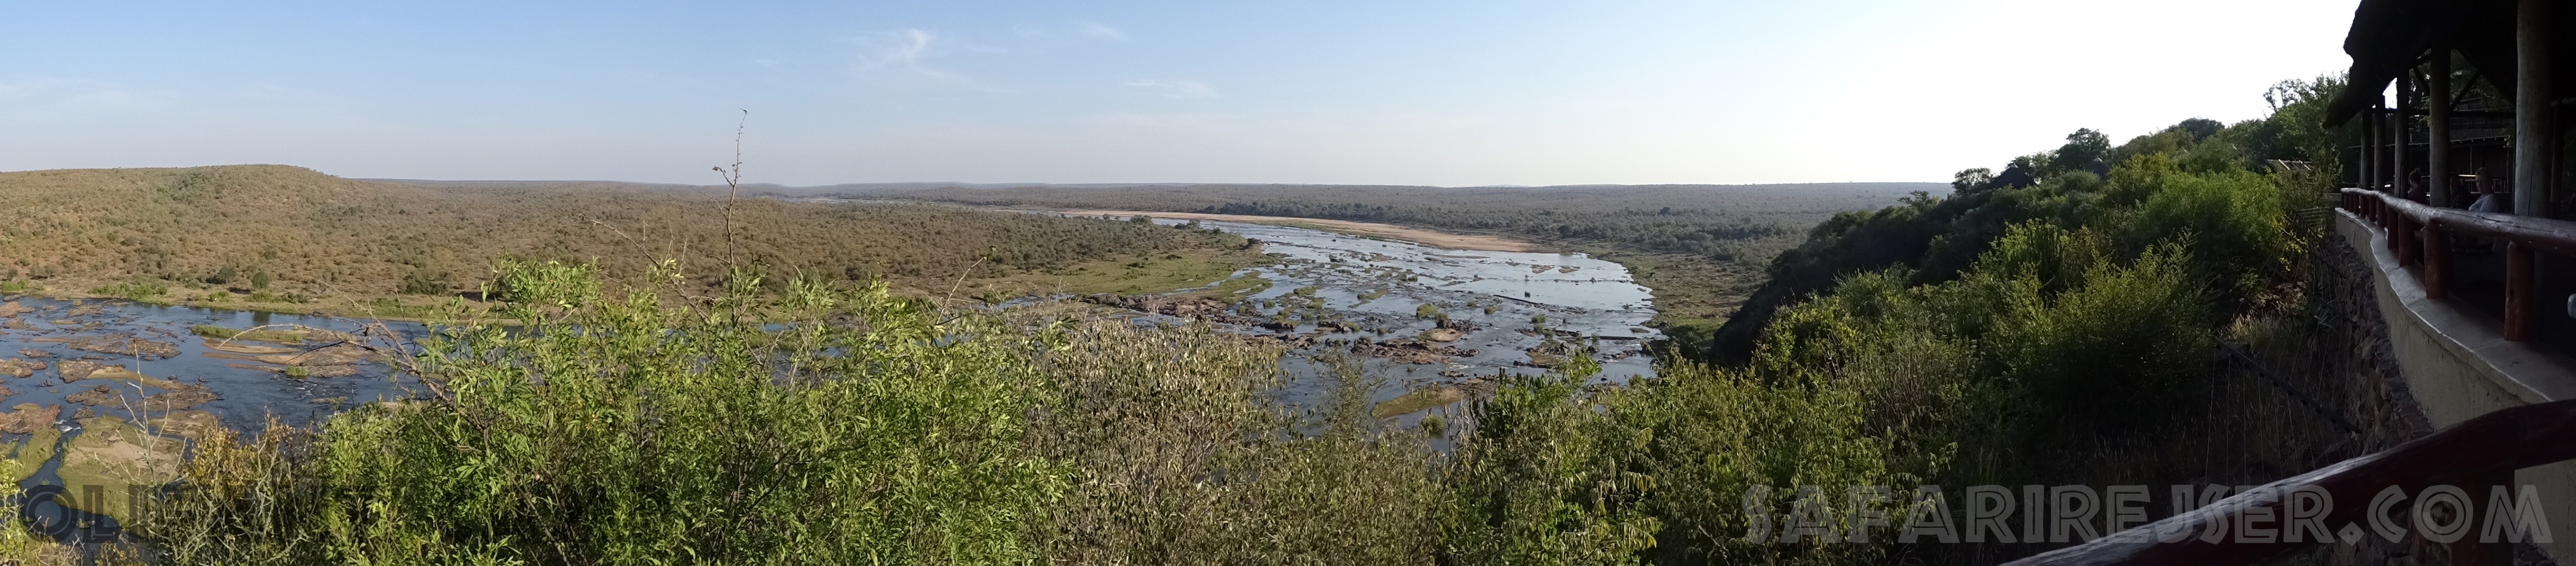 Olifants Camp, Kruger National Park